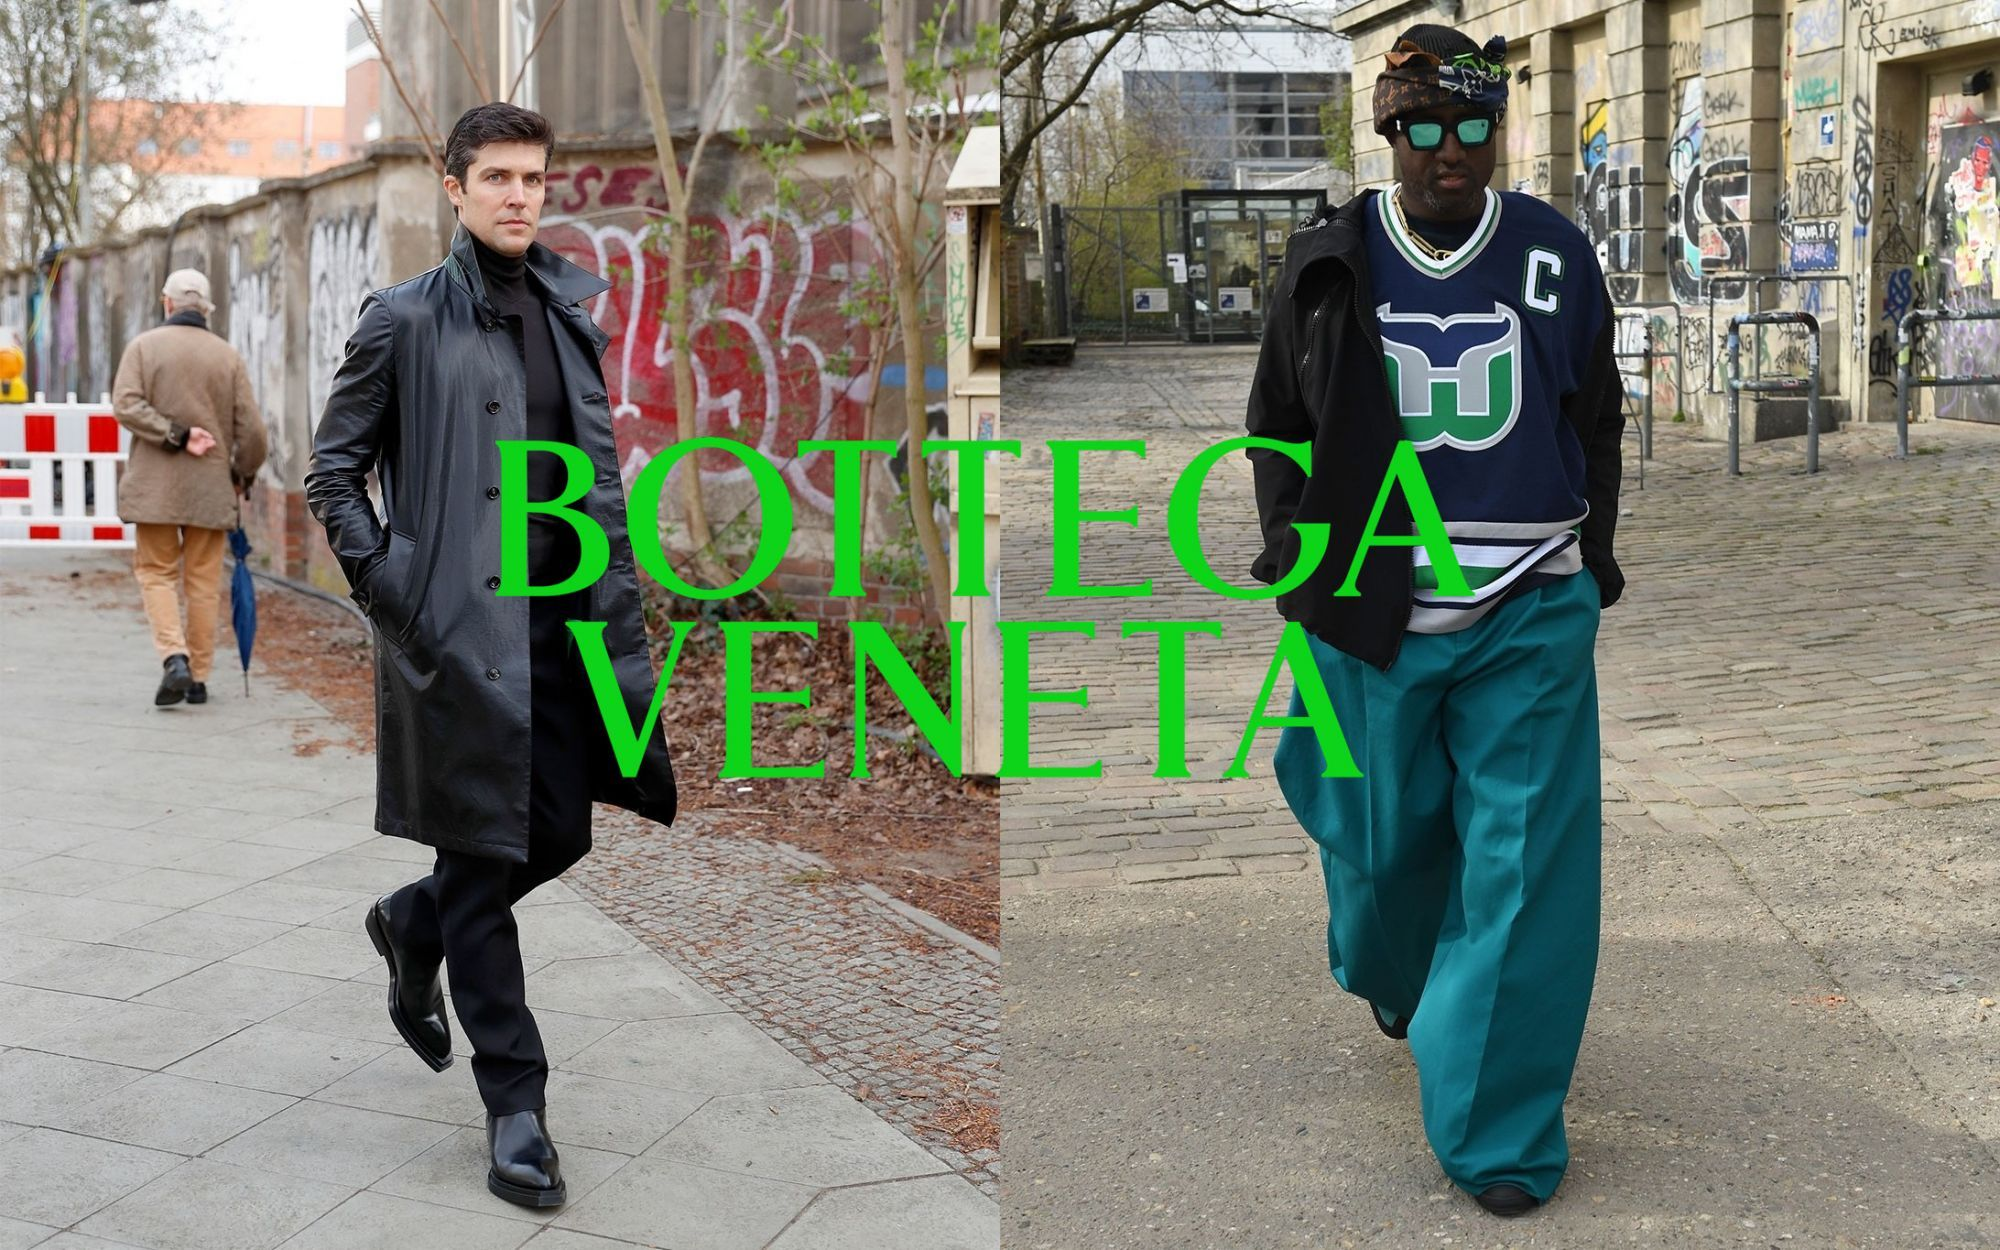 Berghain outfit 8 Stereotypes